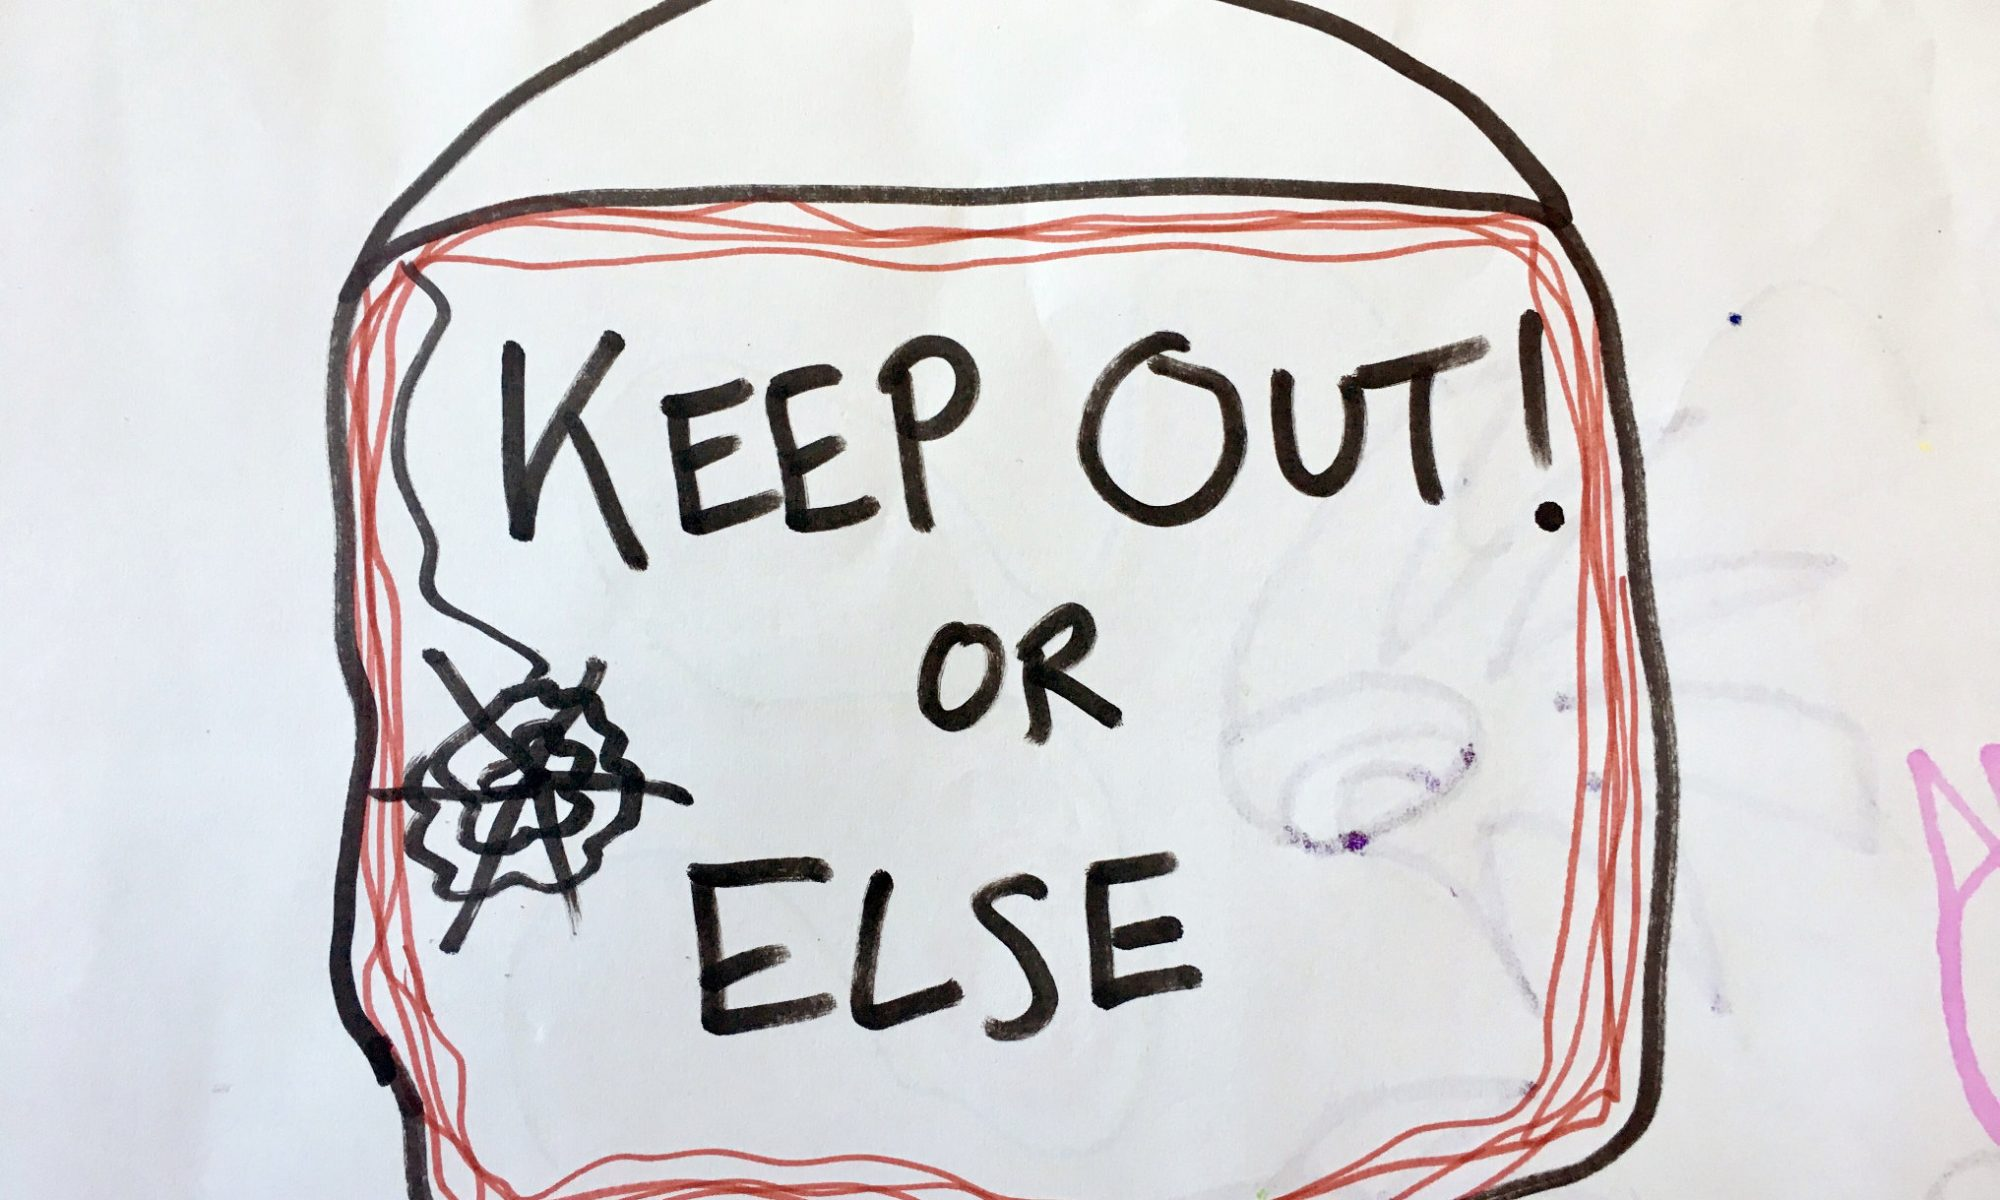 Keep Out or Else!